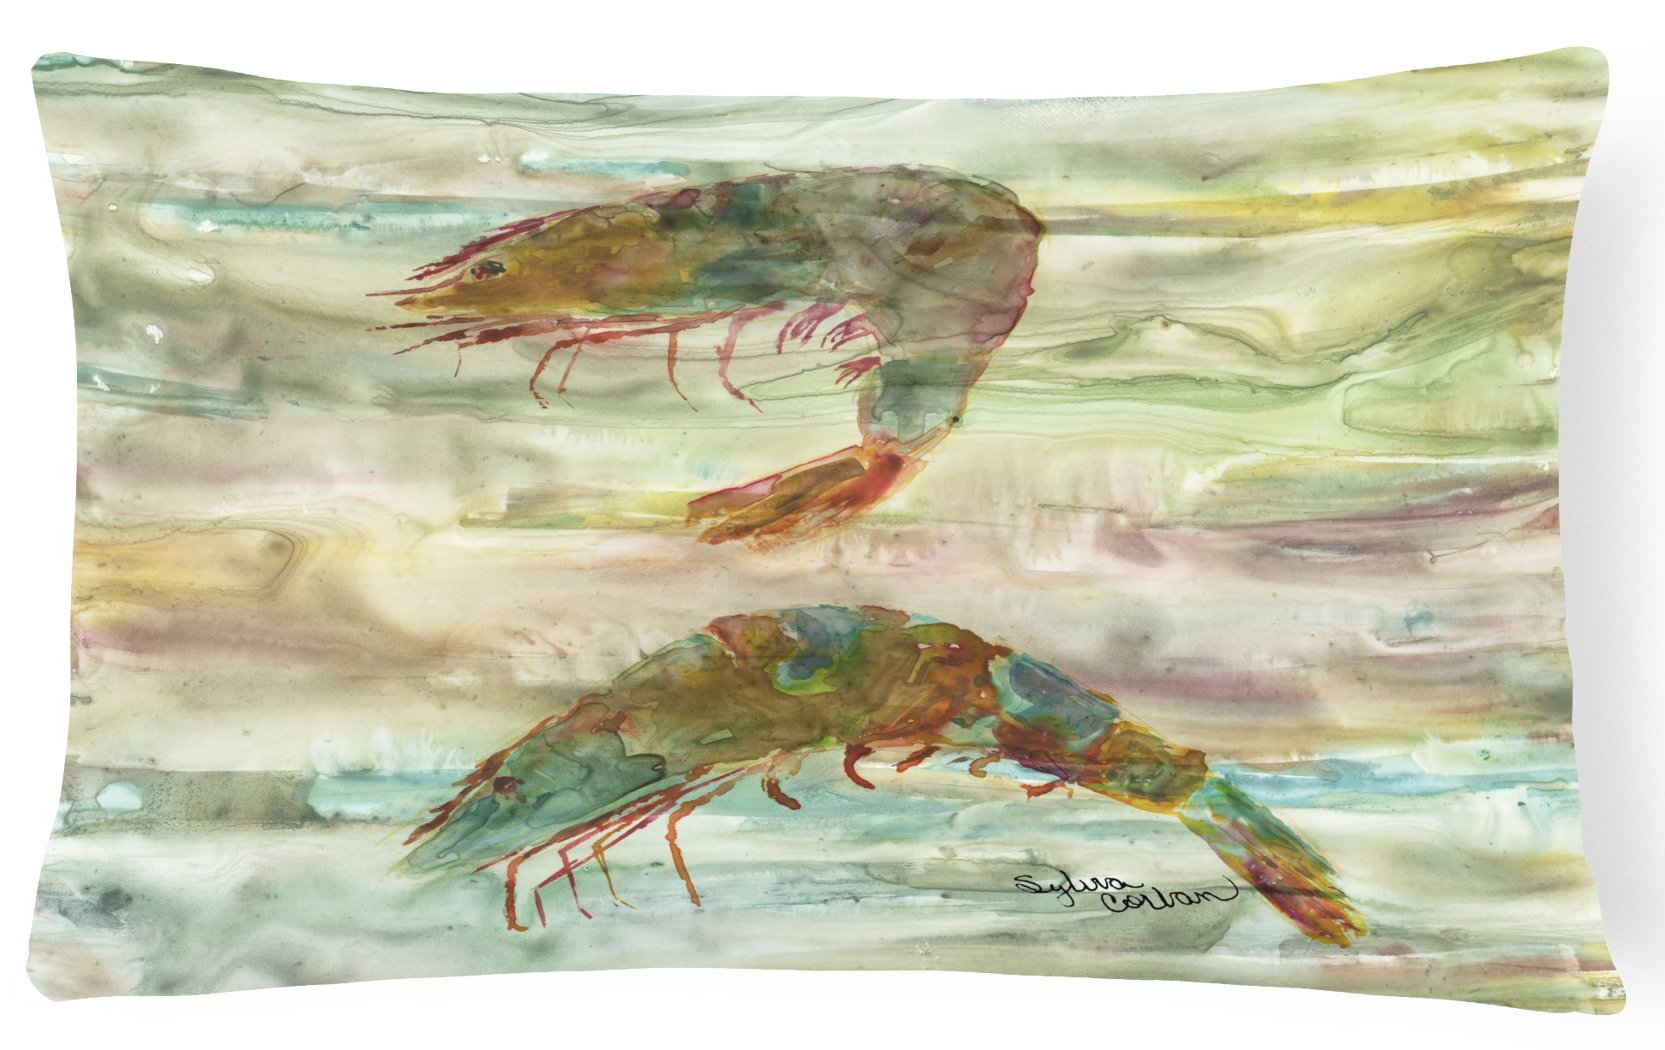 Shrimp Sunset Canvas Fabric Decorative Pillow SC2014PW1216 by Caroline's Treasures